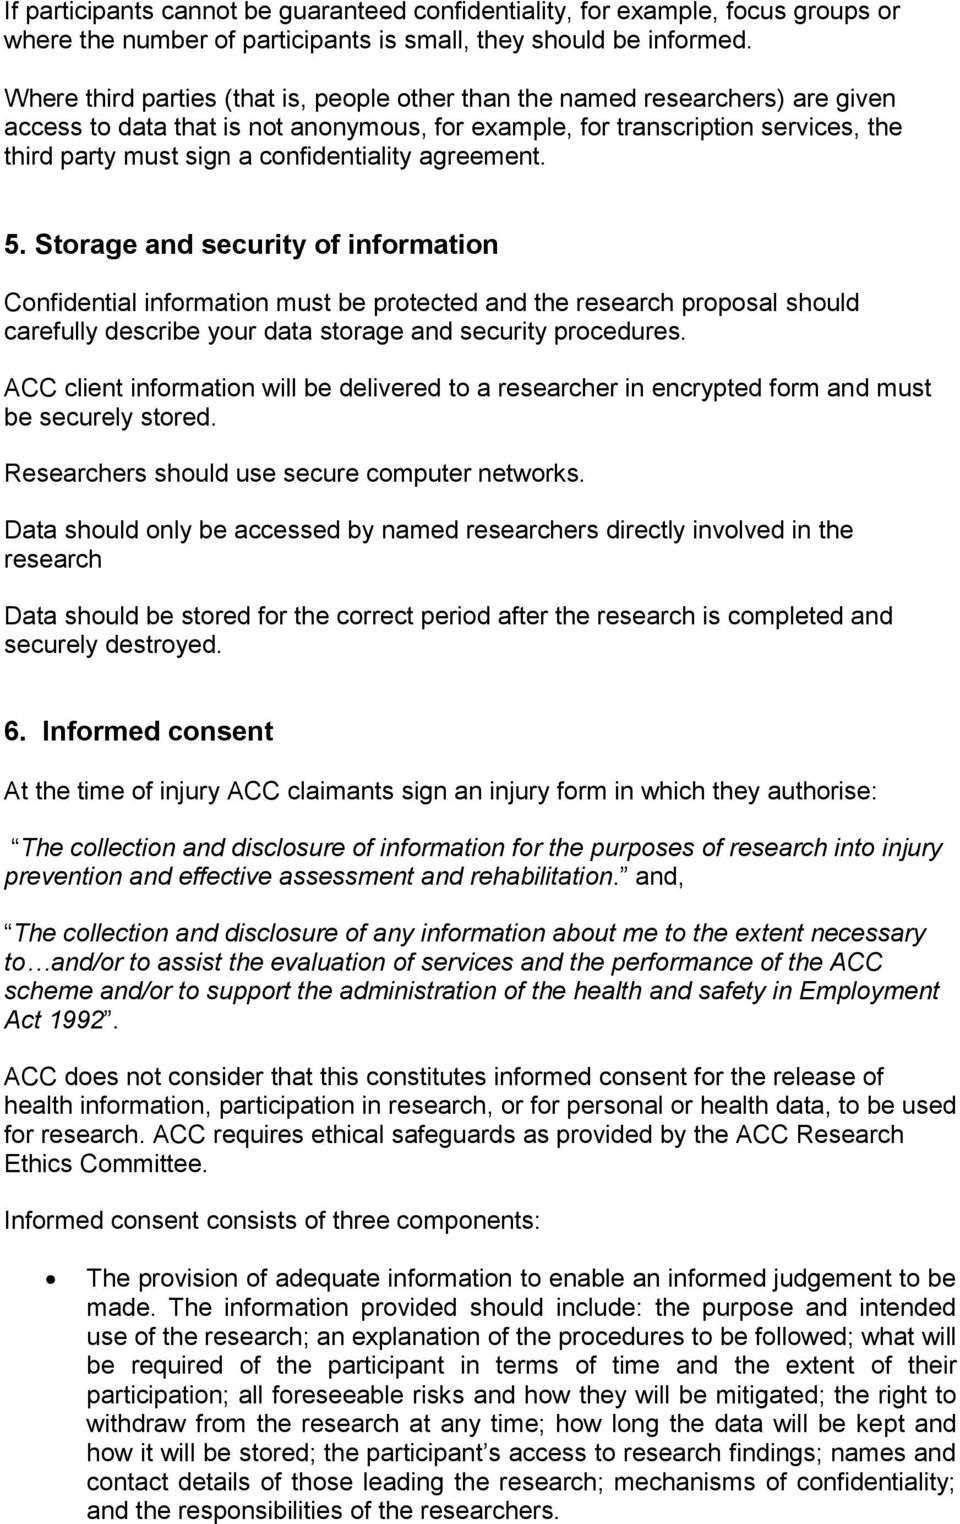 Application Guide to assist completion of the ACC Research Ethics